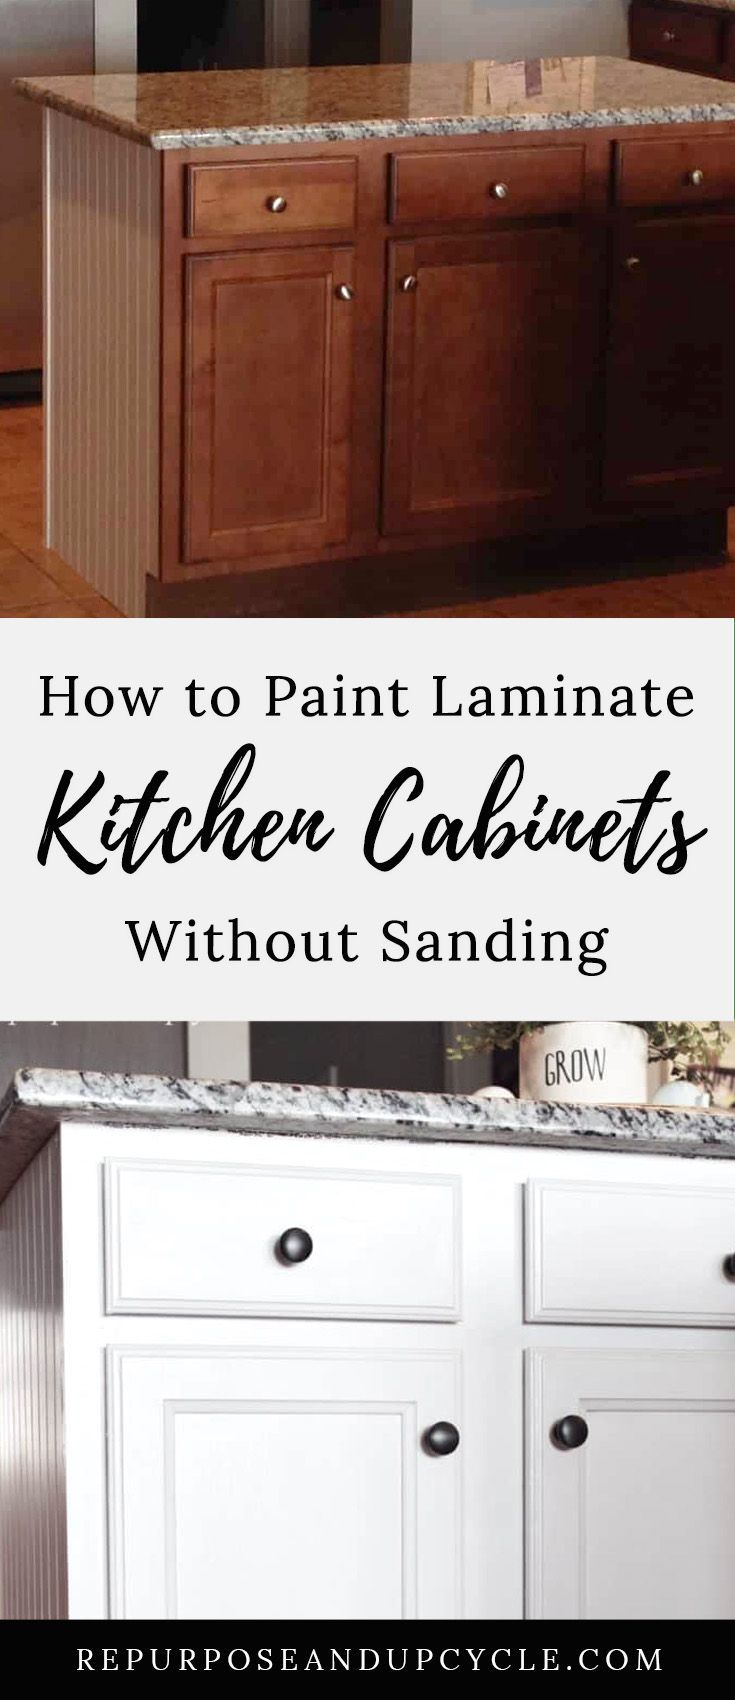 Painting Laminate Cabinets The Right Way Without Sanding Painting Laminate Kitchen Cabinets Laminate Cabinets Laminate Kitchen Cabinets